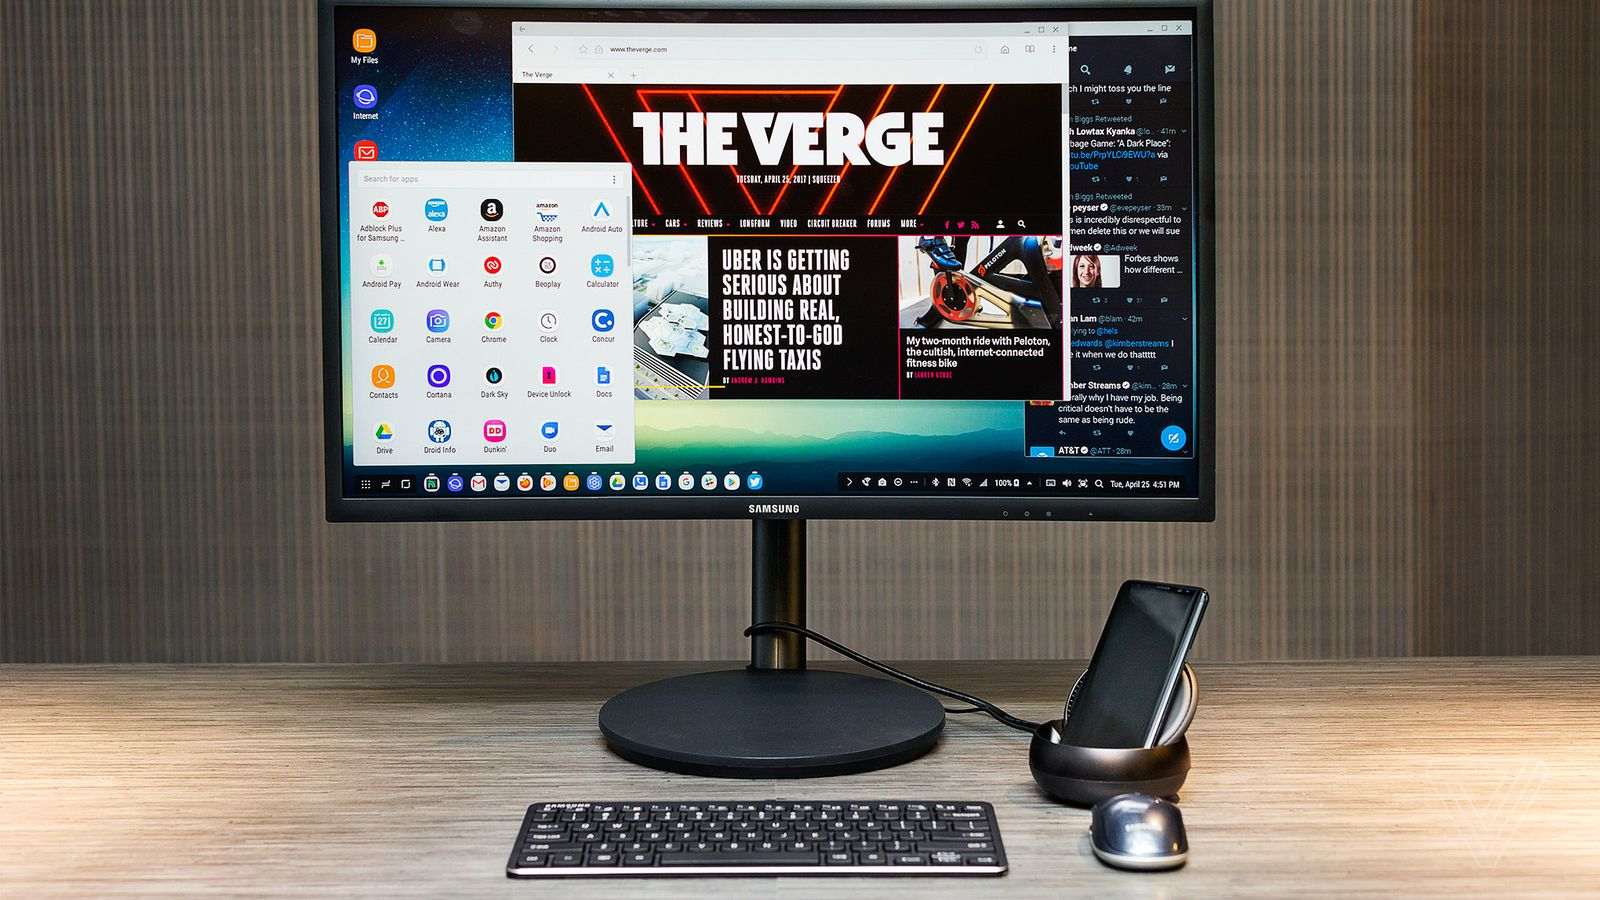 Samsung's DeX is the Closest Thing We Have to Using Our Phones as PCs